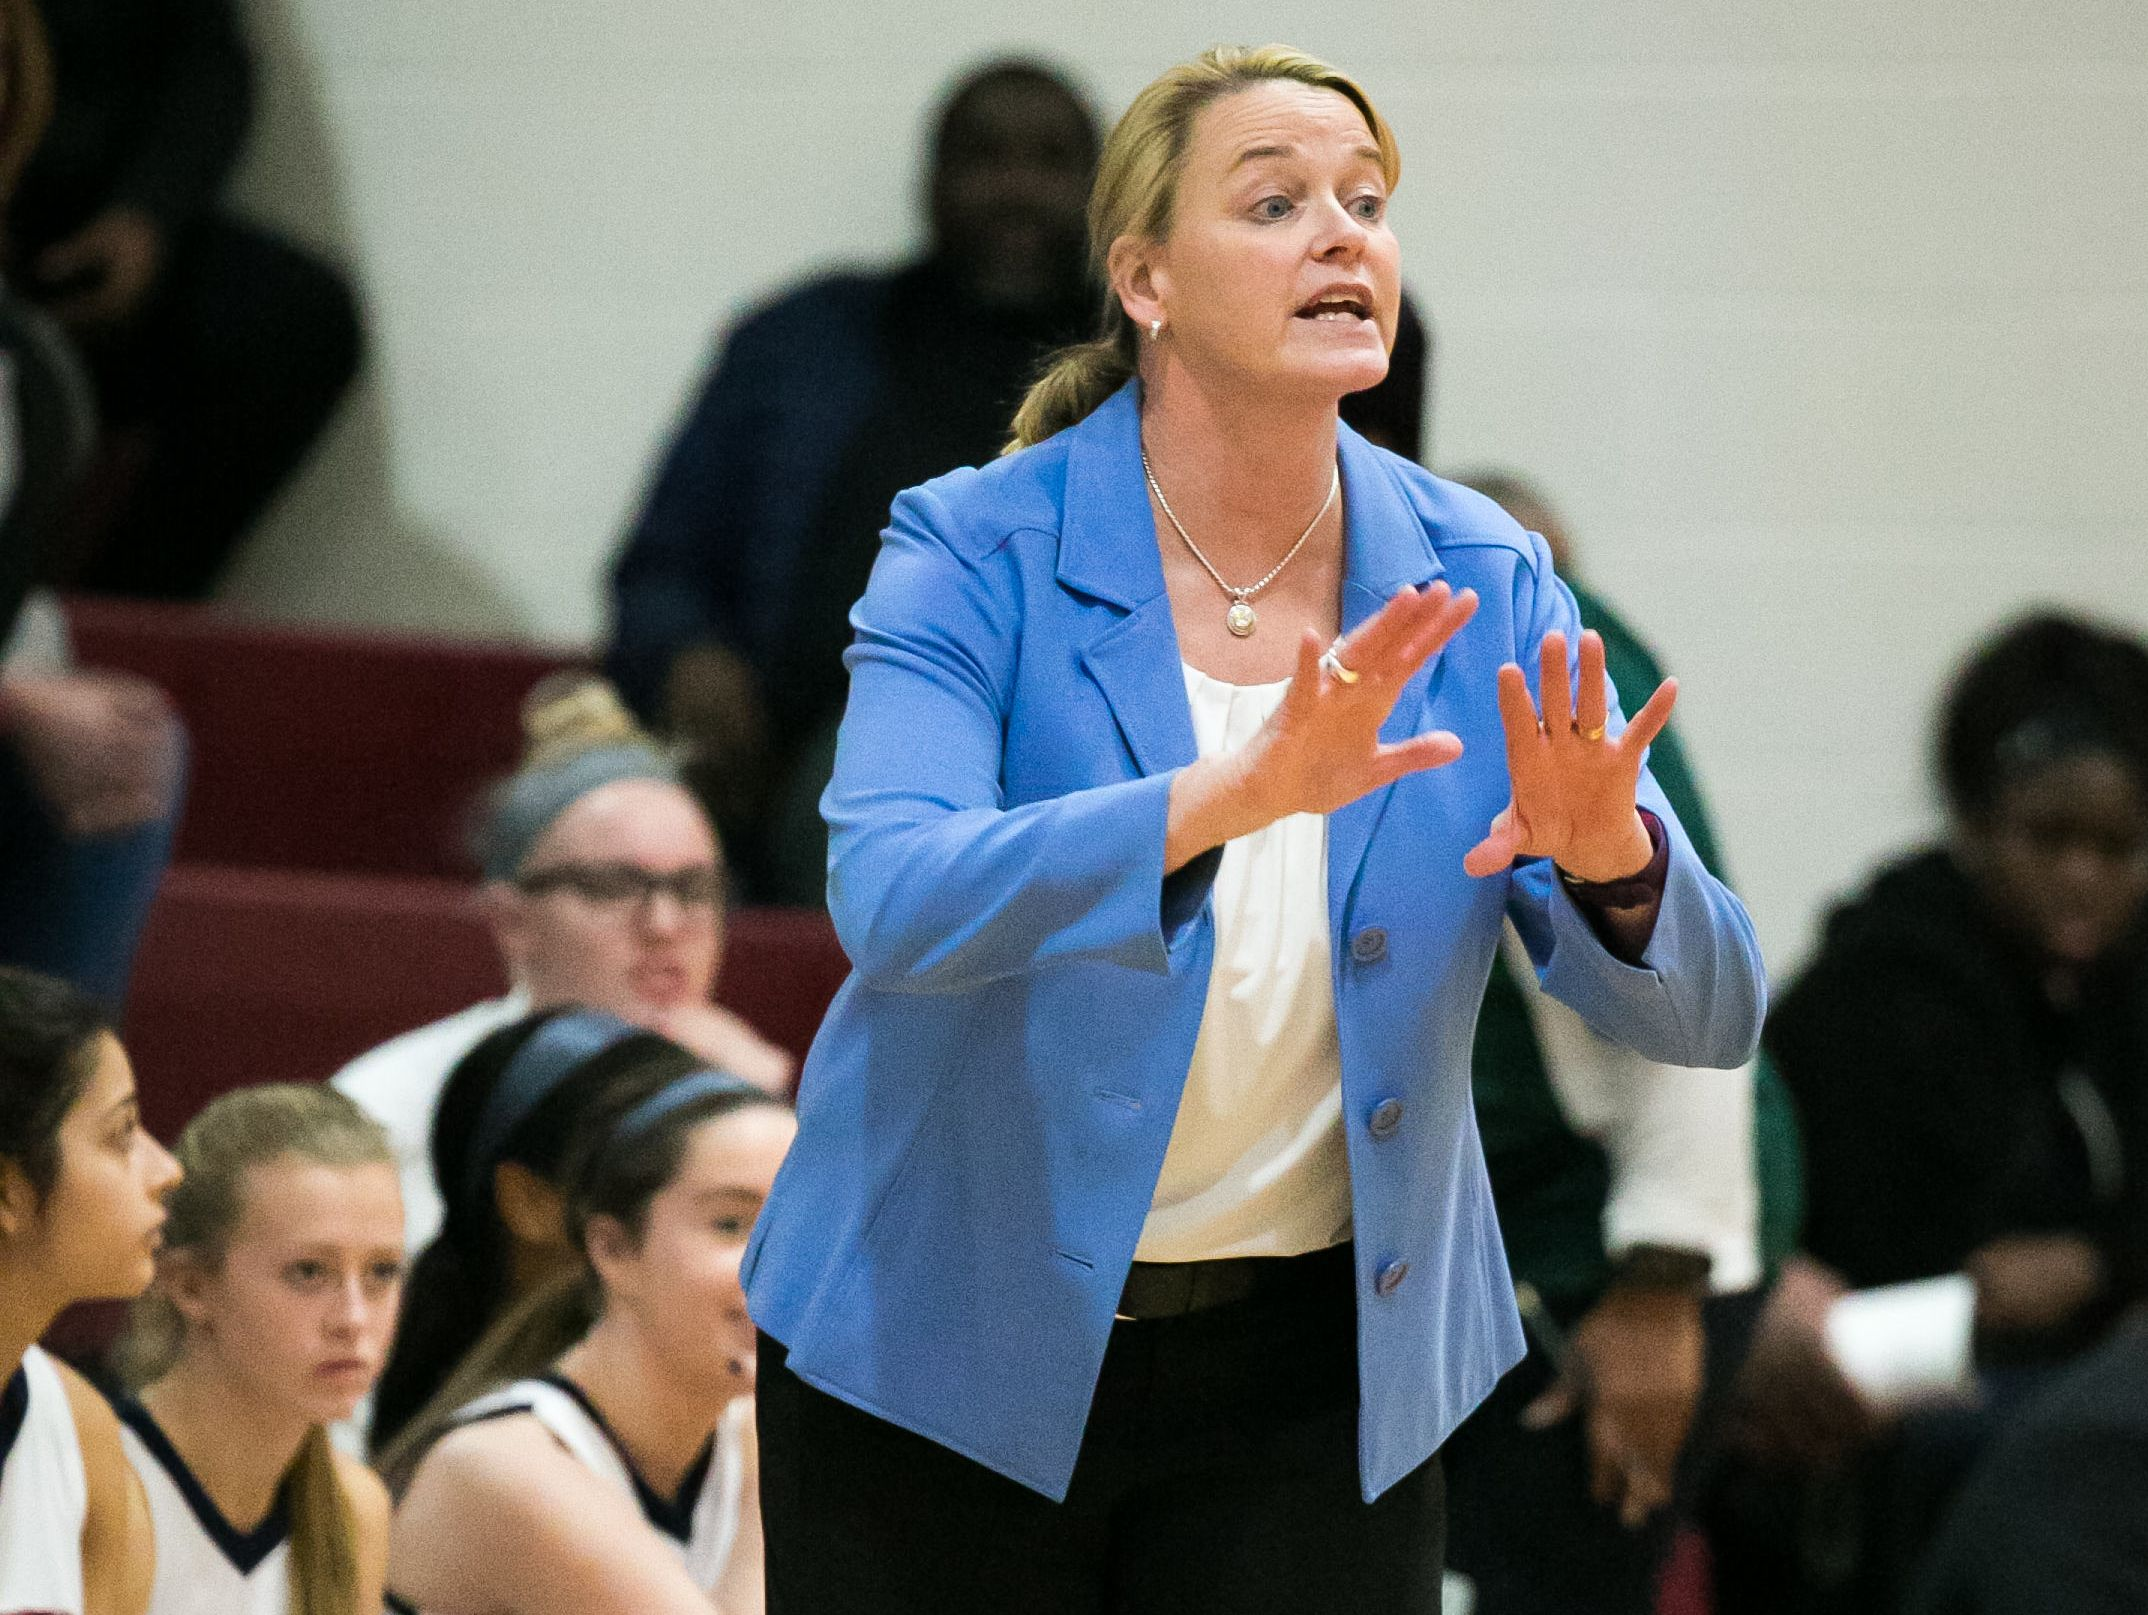 Wilmington Friends coach Carolyn Connors gestures to her players from courtside.